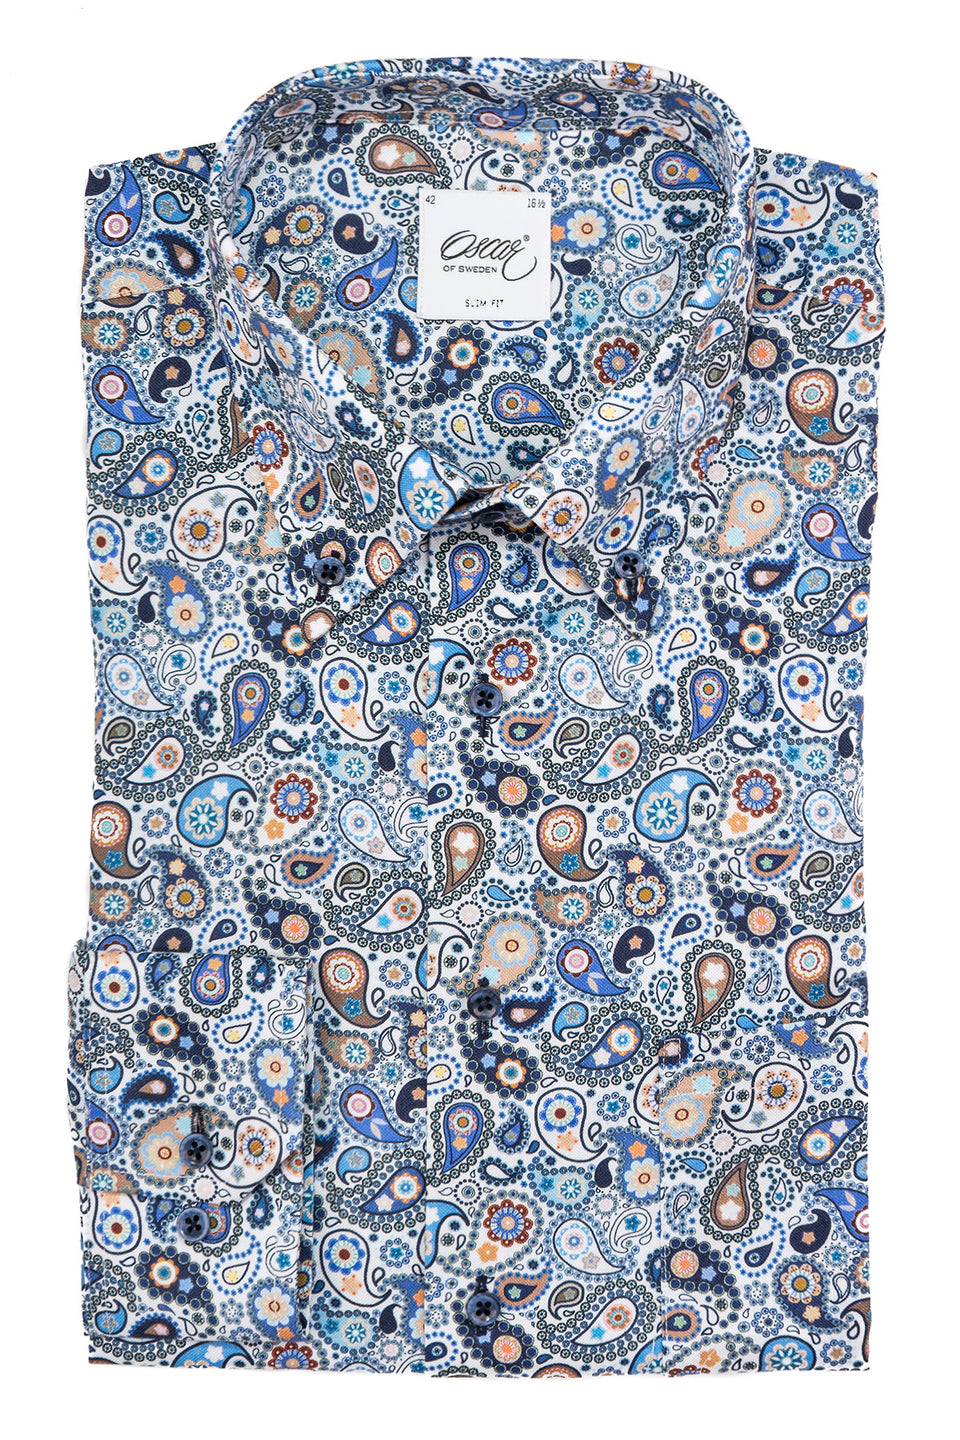 Blue paisley slim fit button down shirt